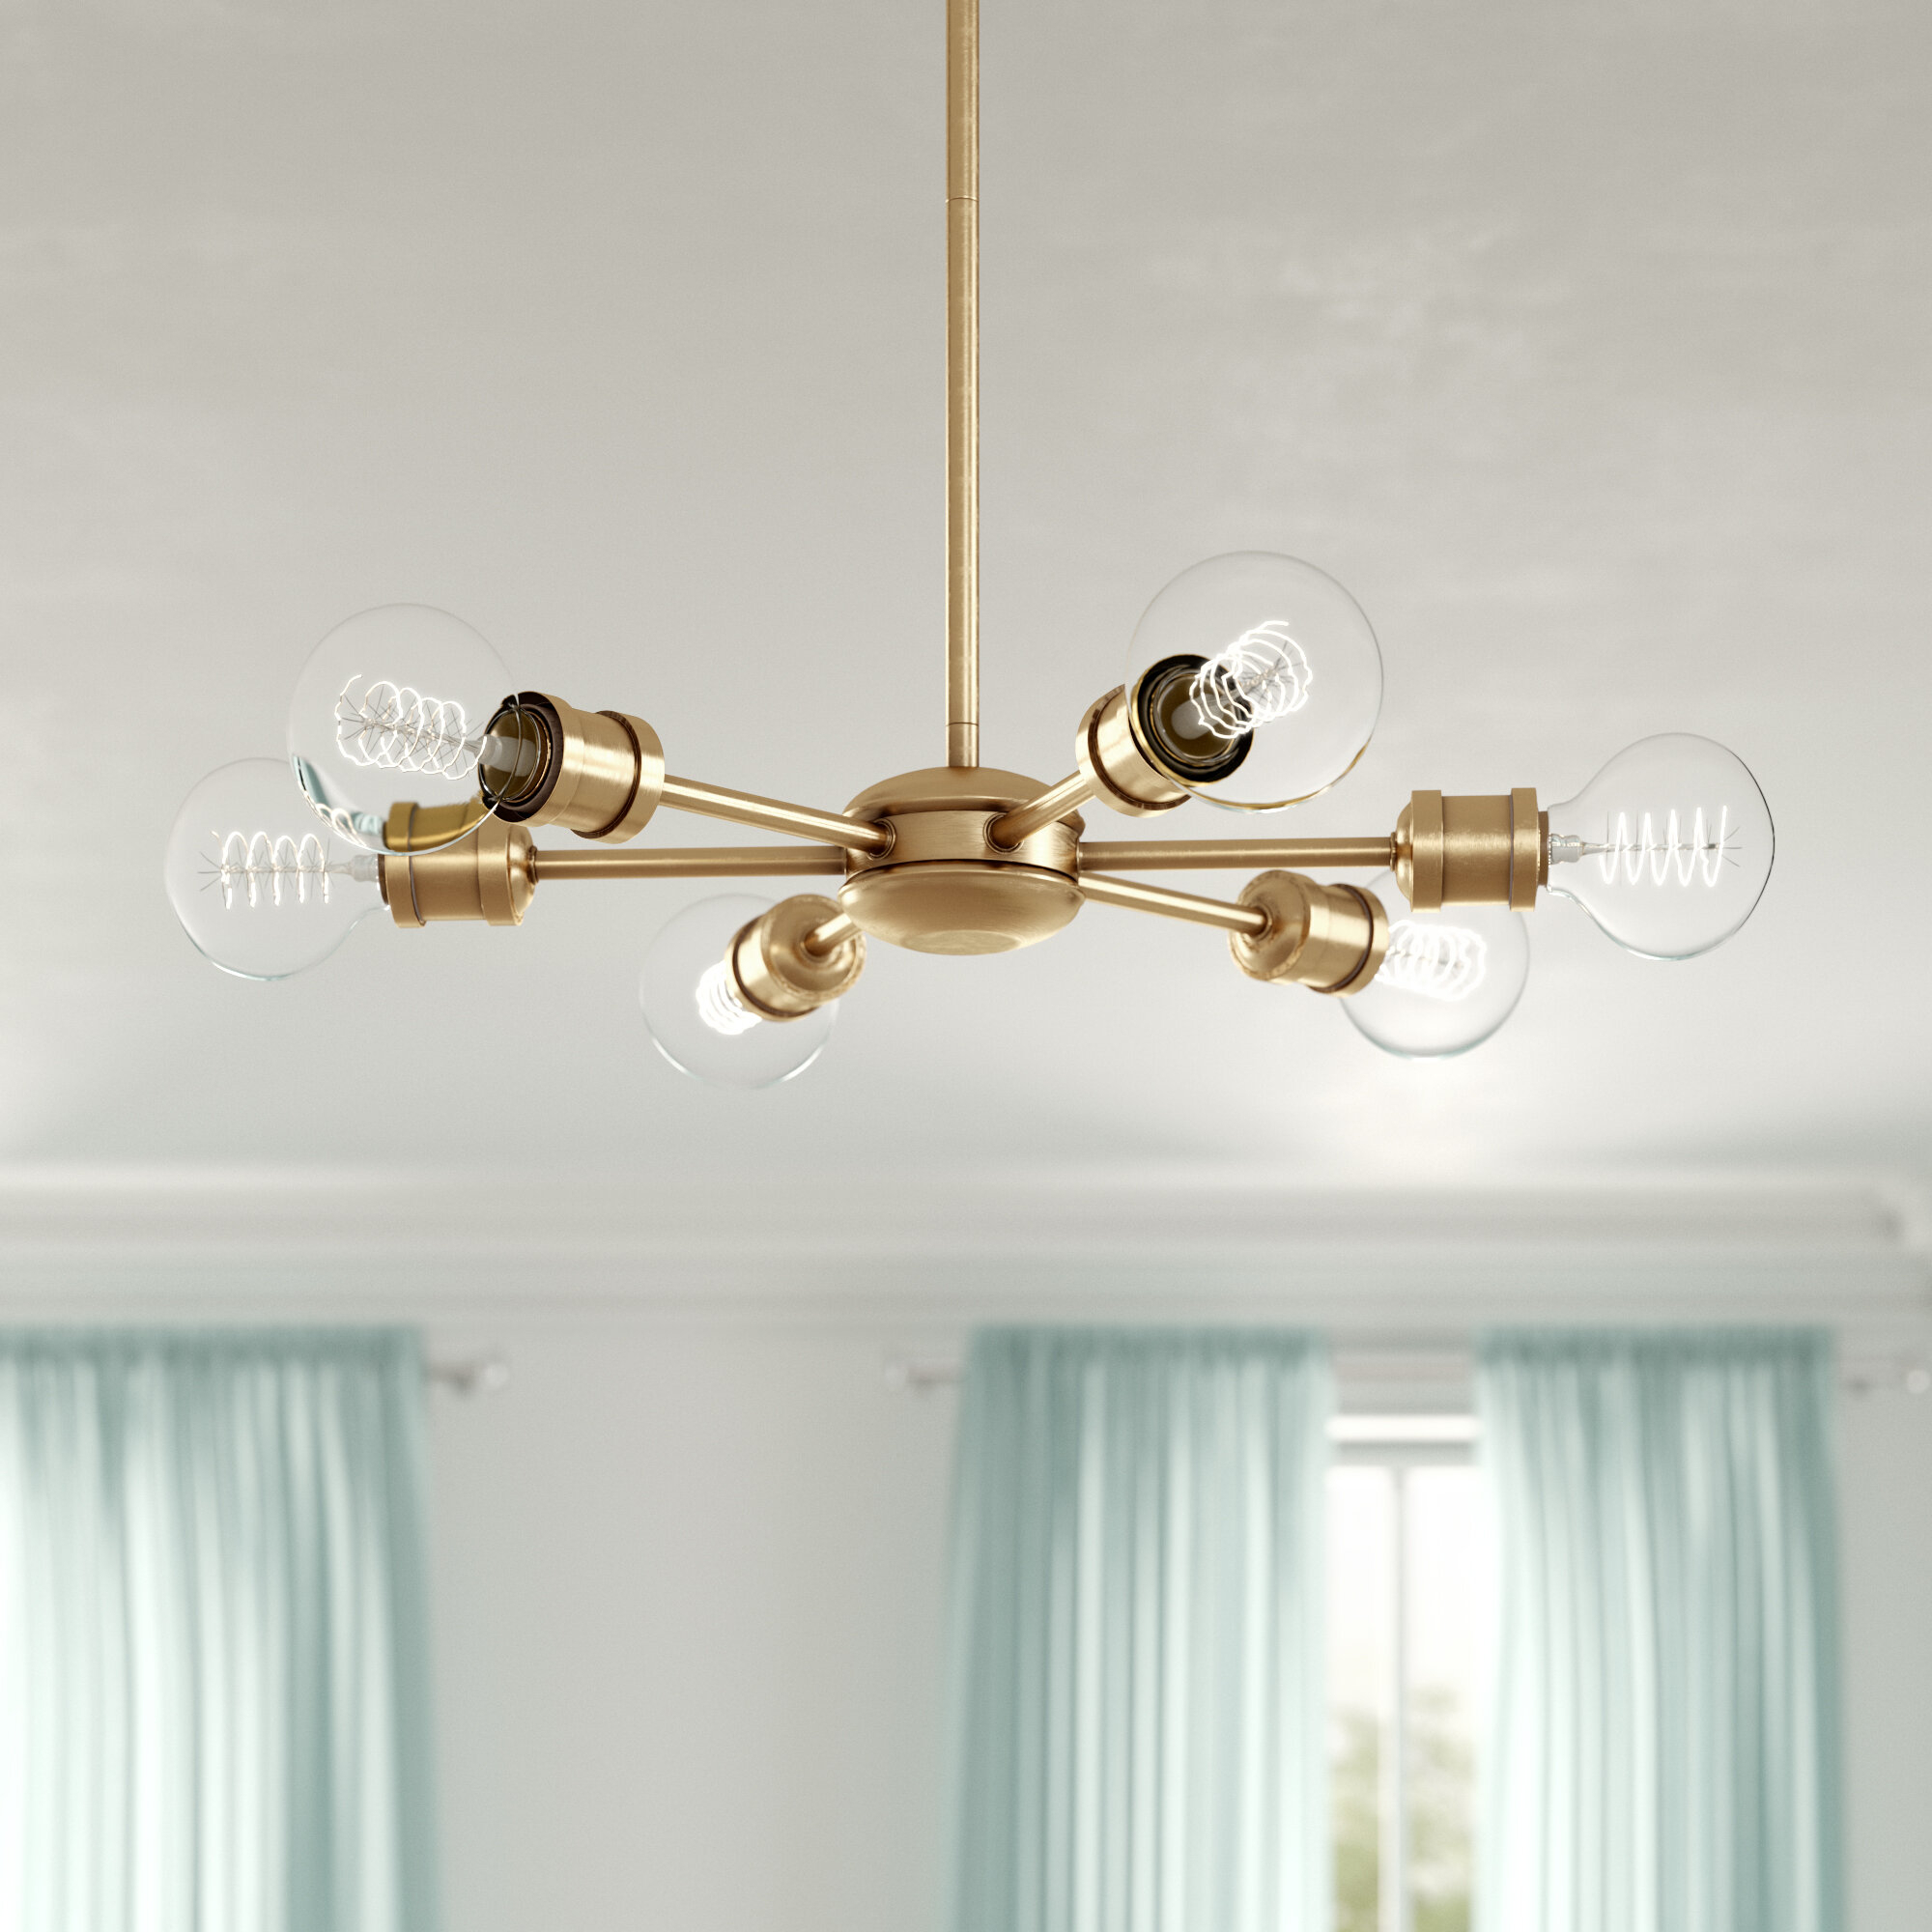 Bautista 6-Light Sputnik Chandelier intended for Asher 12-Light Sputnik Chandeliers (Image 8 of 30)